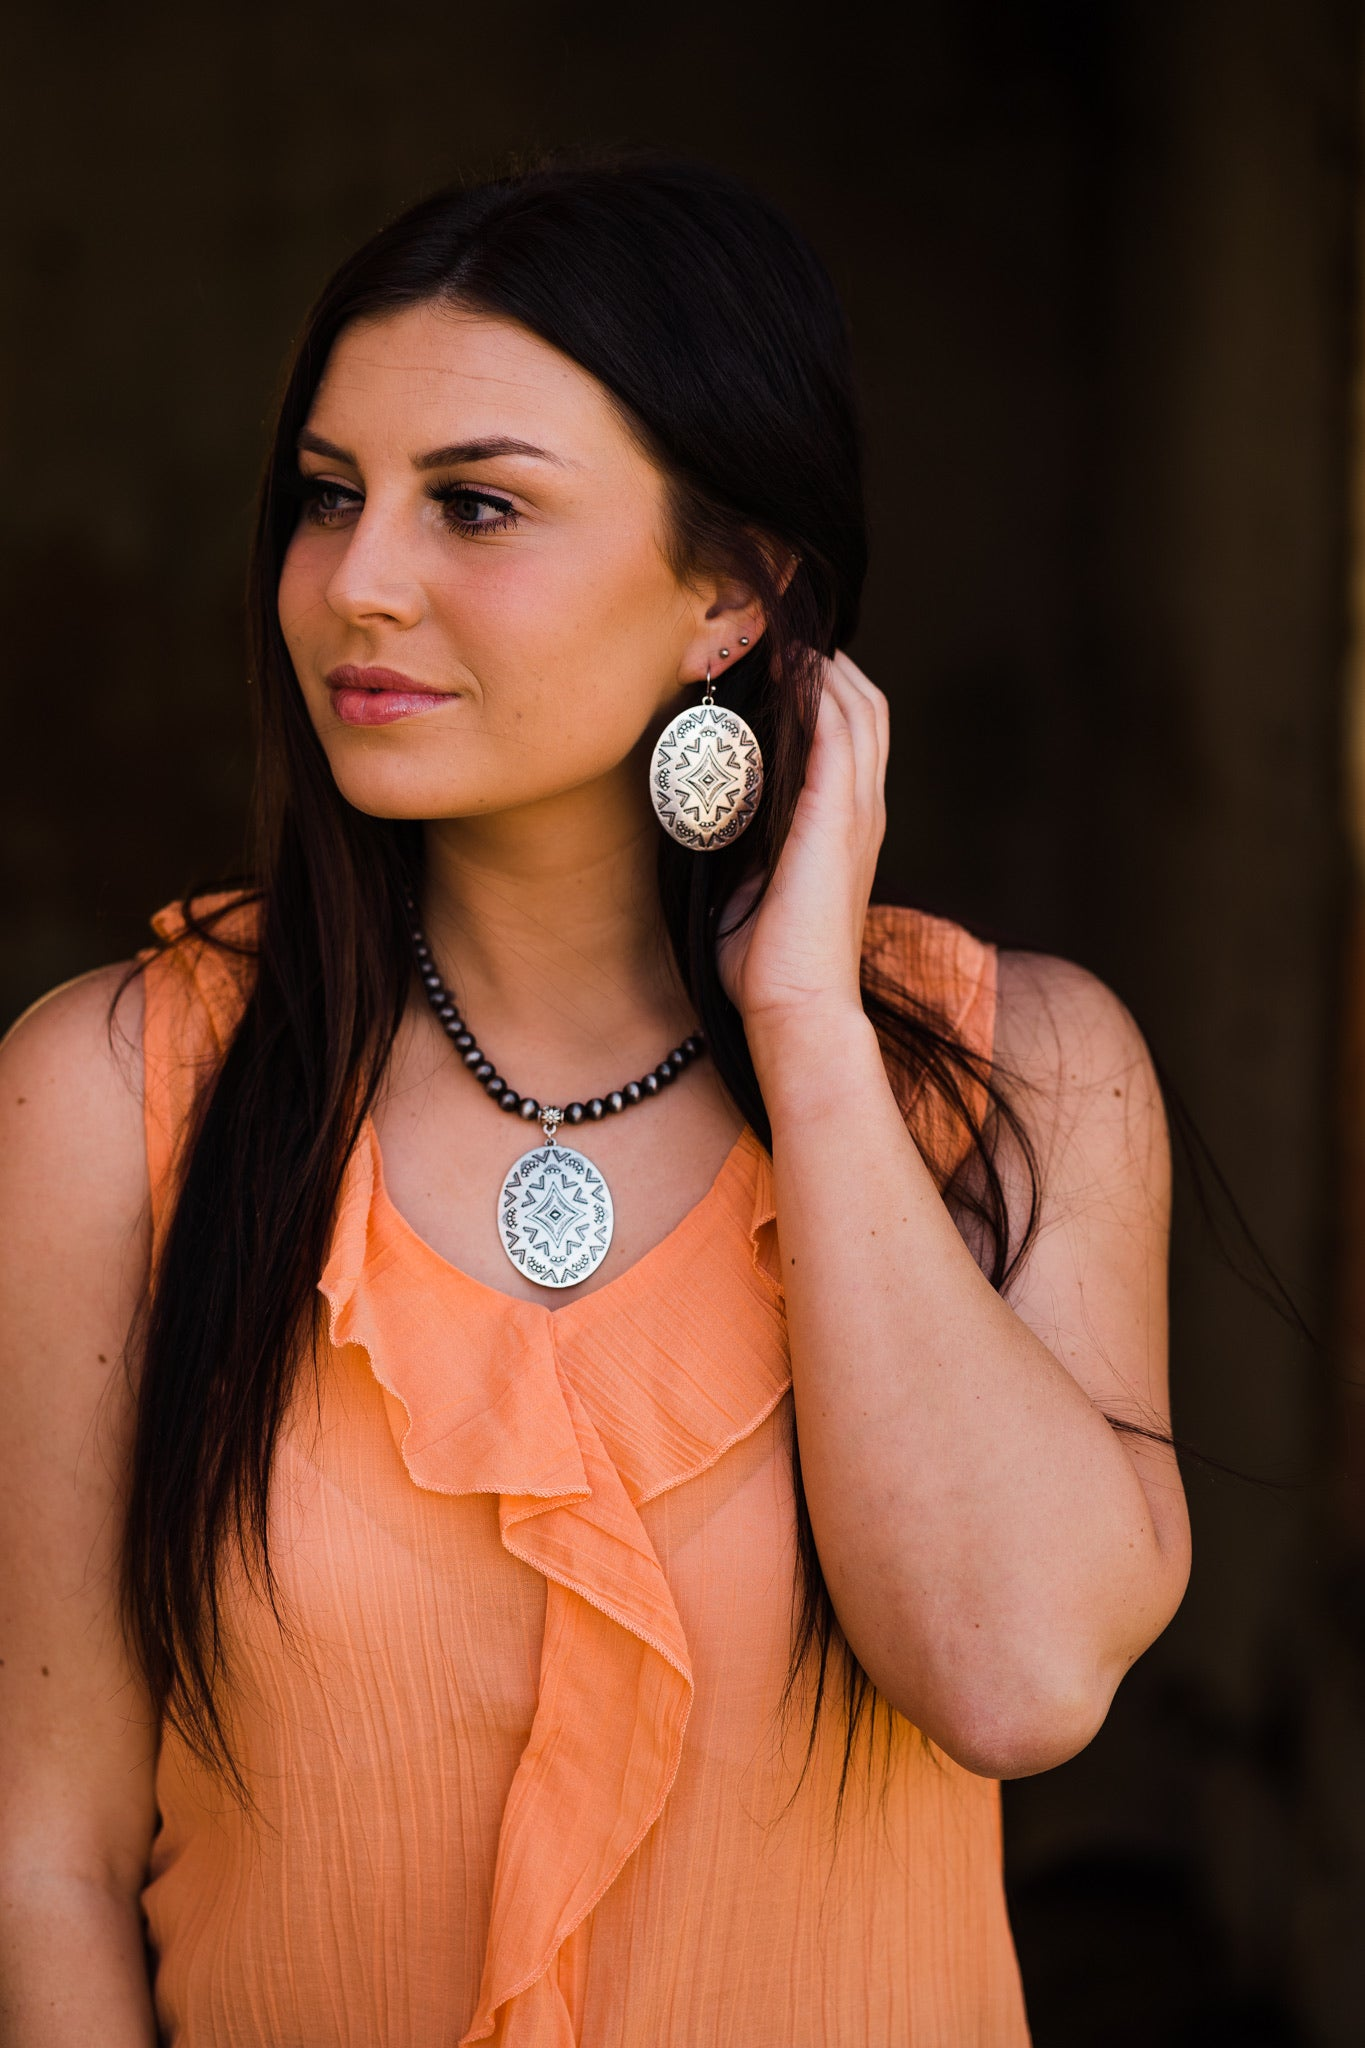 Oval Concho Stamped Necklace